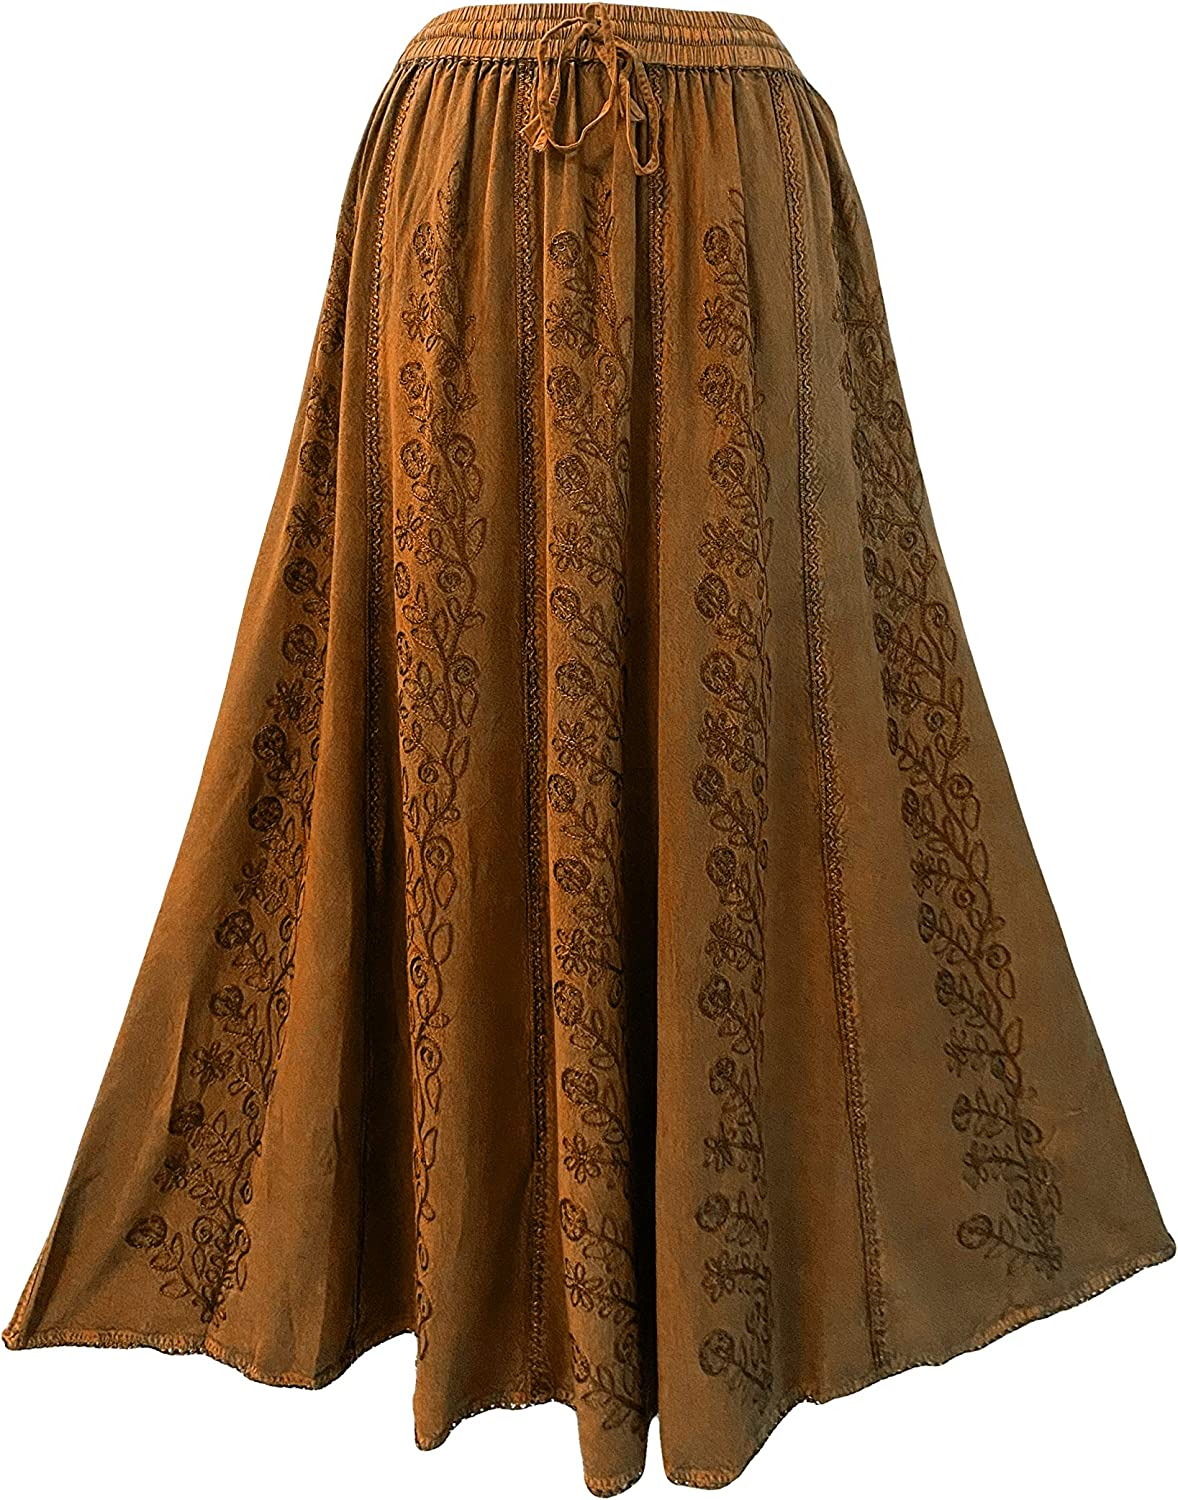 Agan Traders Women's Bohemian Medieval Vintage Embroidered Flared Panel Elastic Waistband Drawstring Long Maxi Skirt